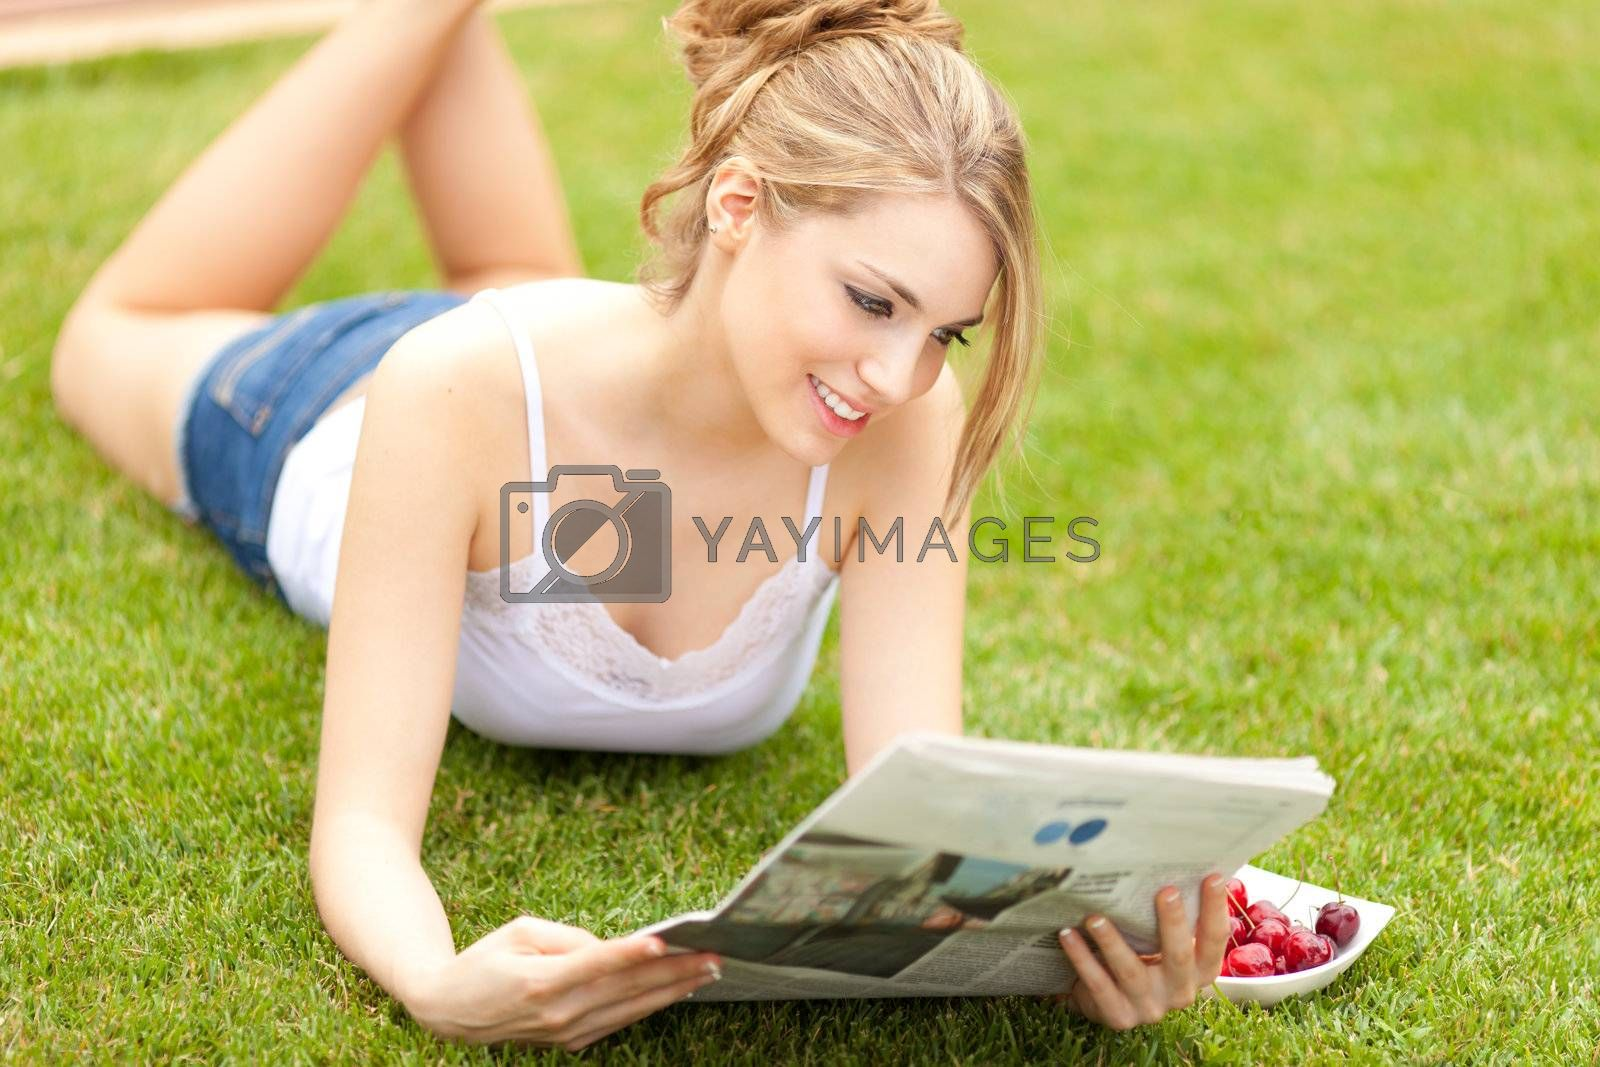 young beautiful blonde girl reading the newspaper and eating cherries on the grass